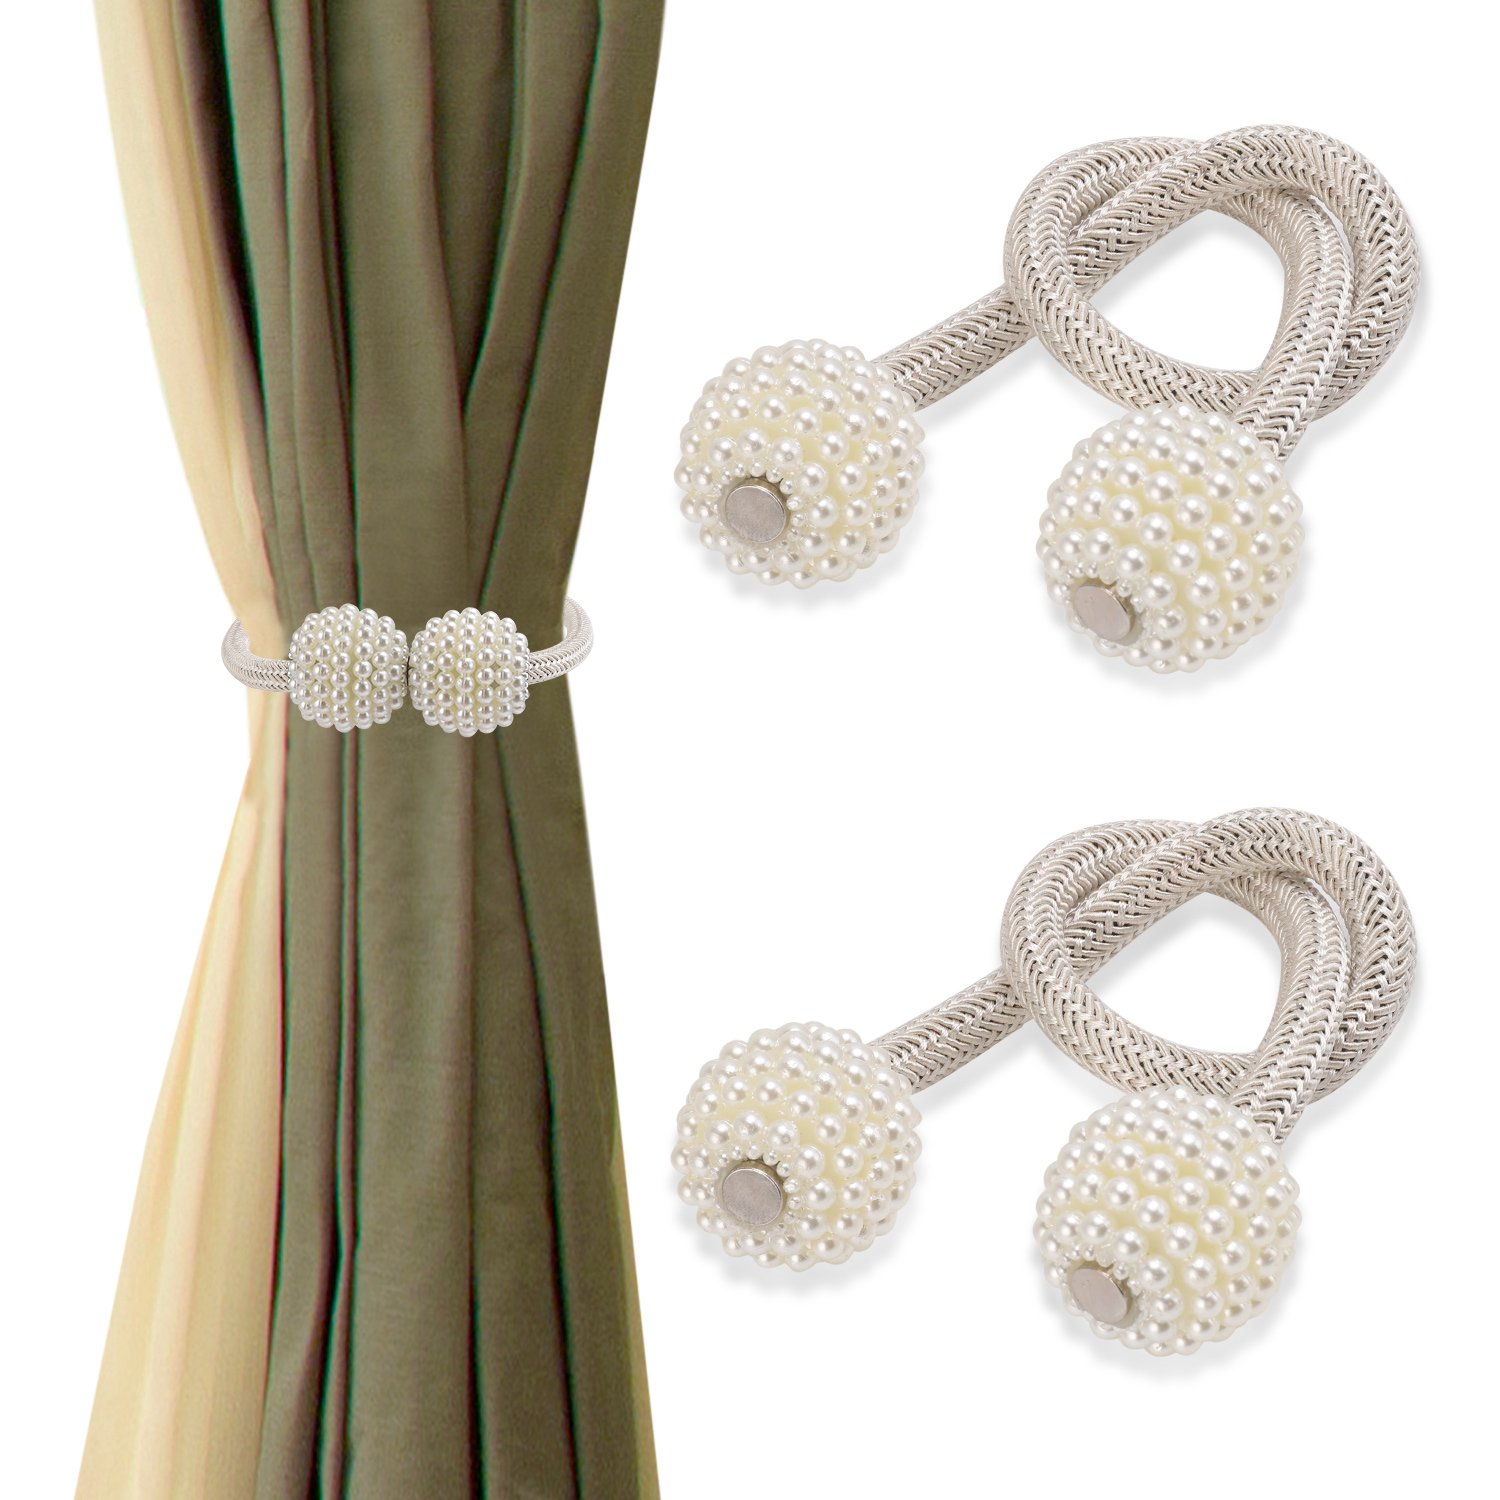 Nanami Chic 1 Pair Window Curtain Tiebacks Clips Strong Magnetic Tie Band Home Office Decorative Drapes Holdbacks European Style (Beige)